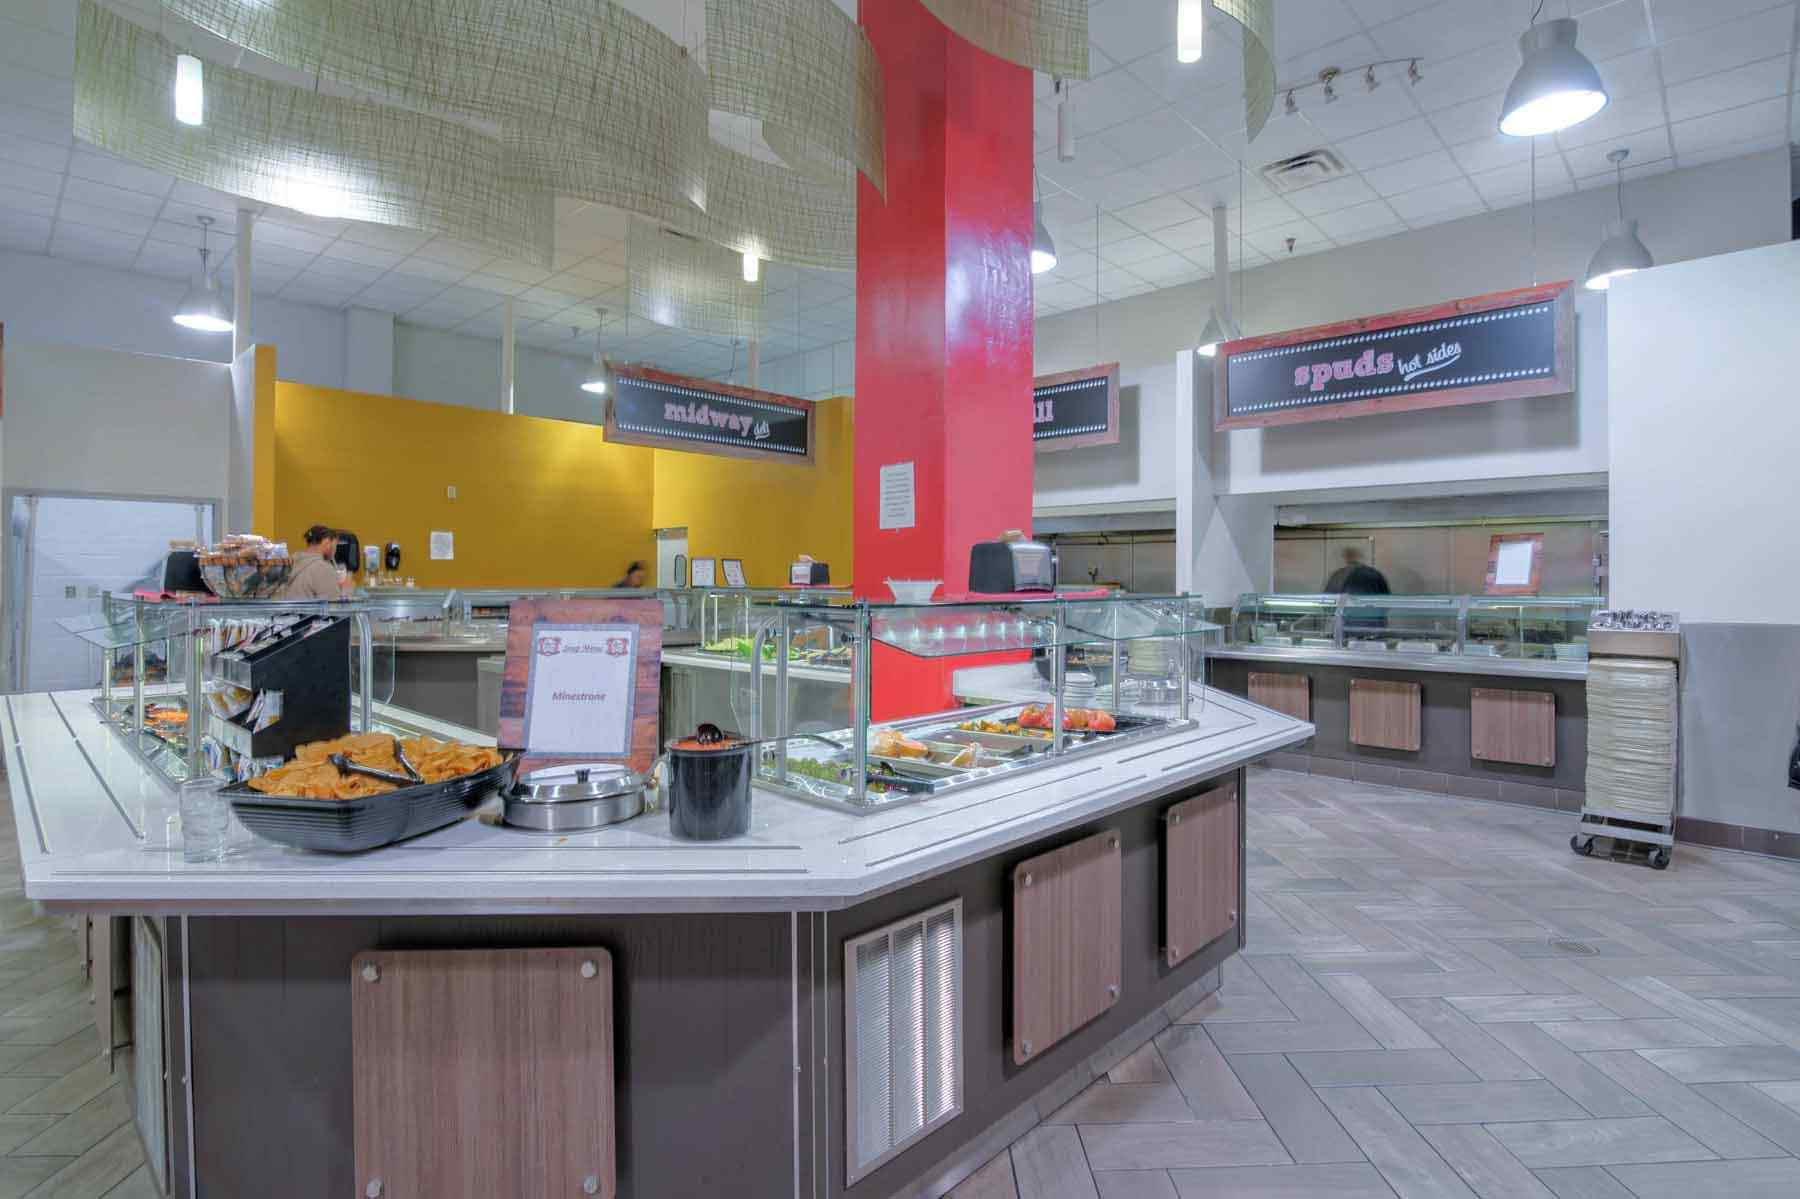 SouthGate-Campus-Centre-Tallahassee-FL-Dining-Area2-Unilodgers